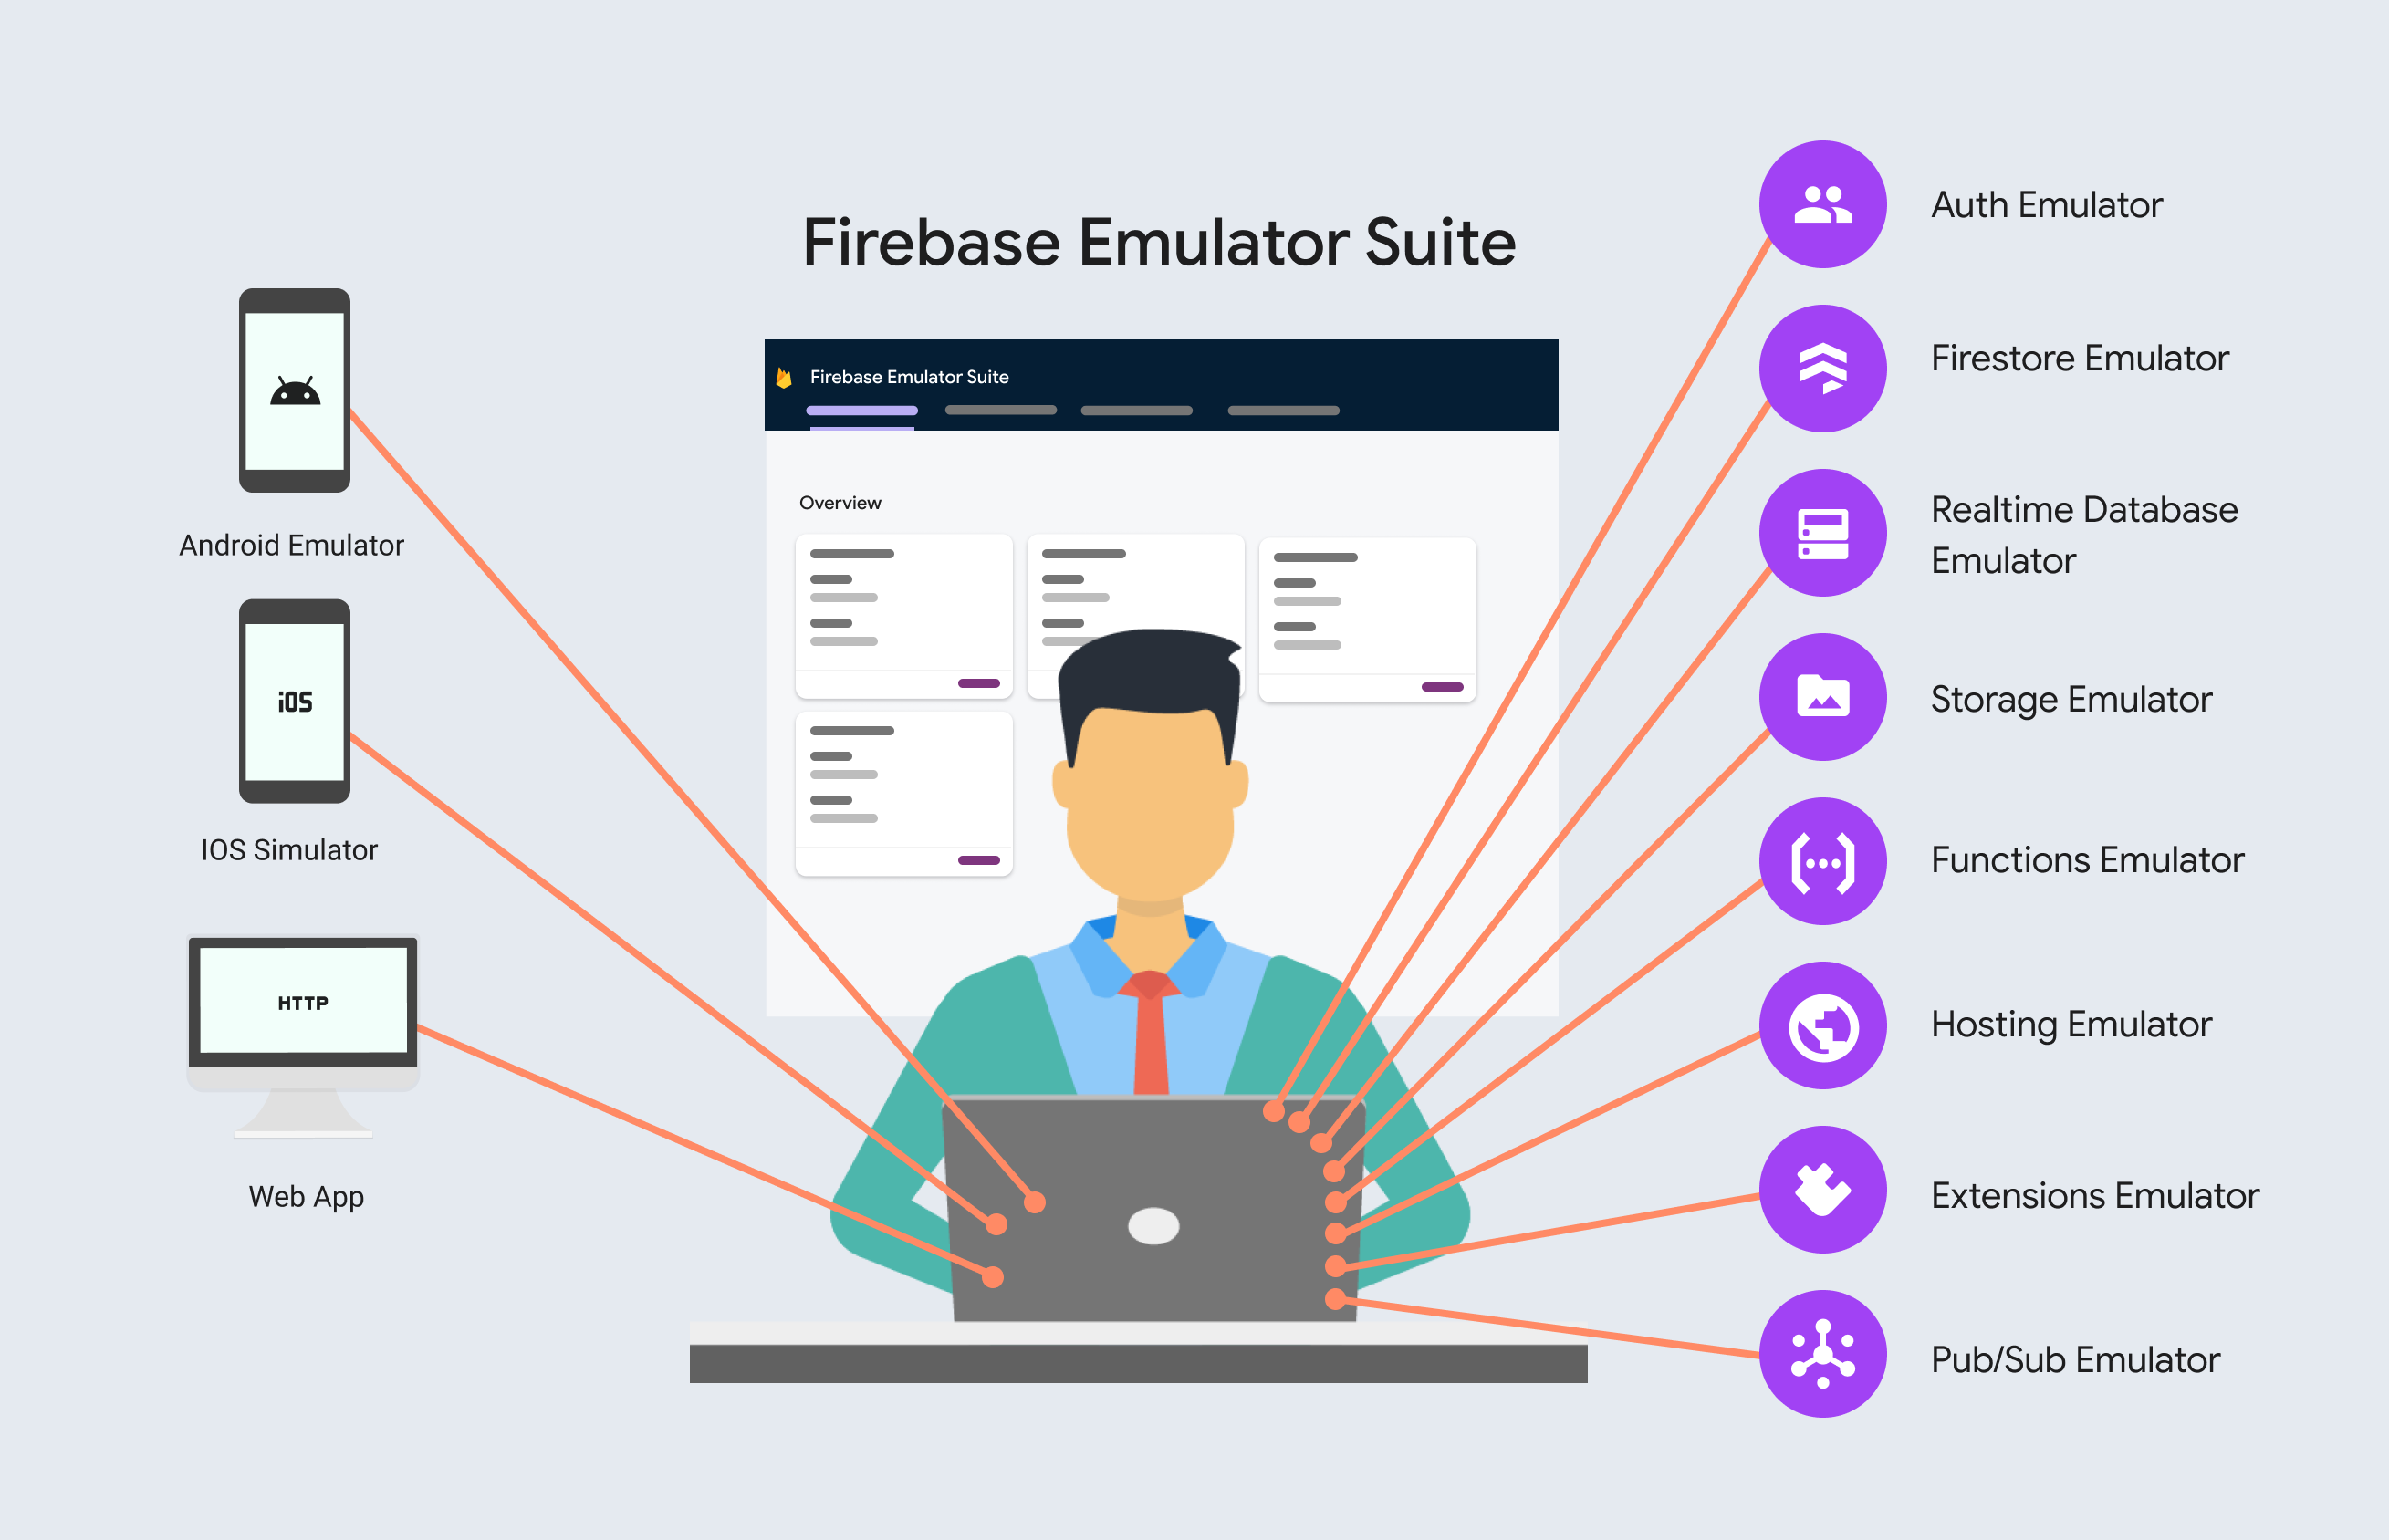 Adding Firebase Local Emulator Suite to your development workflows.